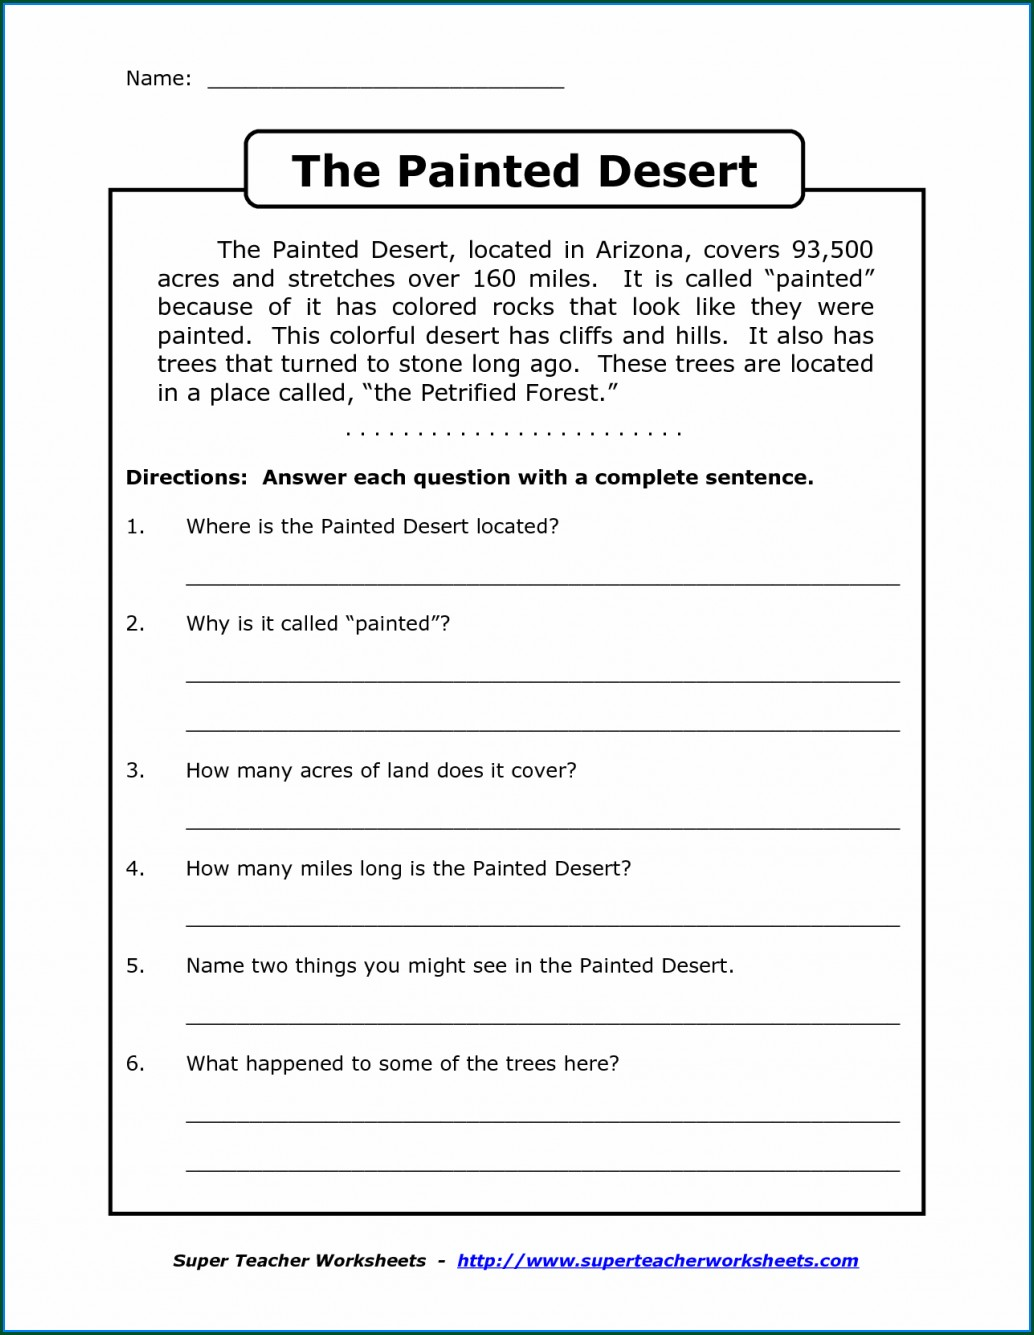 Free Printable Reading Comprehension Worksheets For 4th Grade